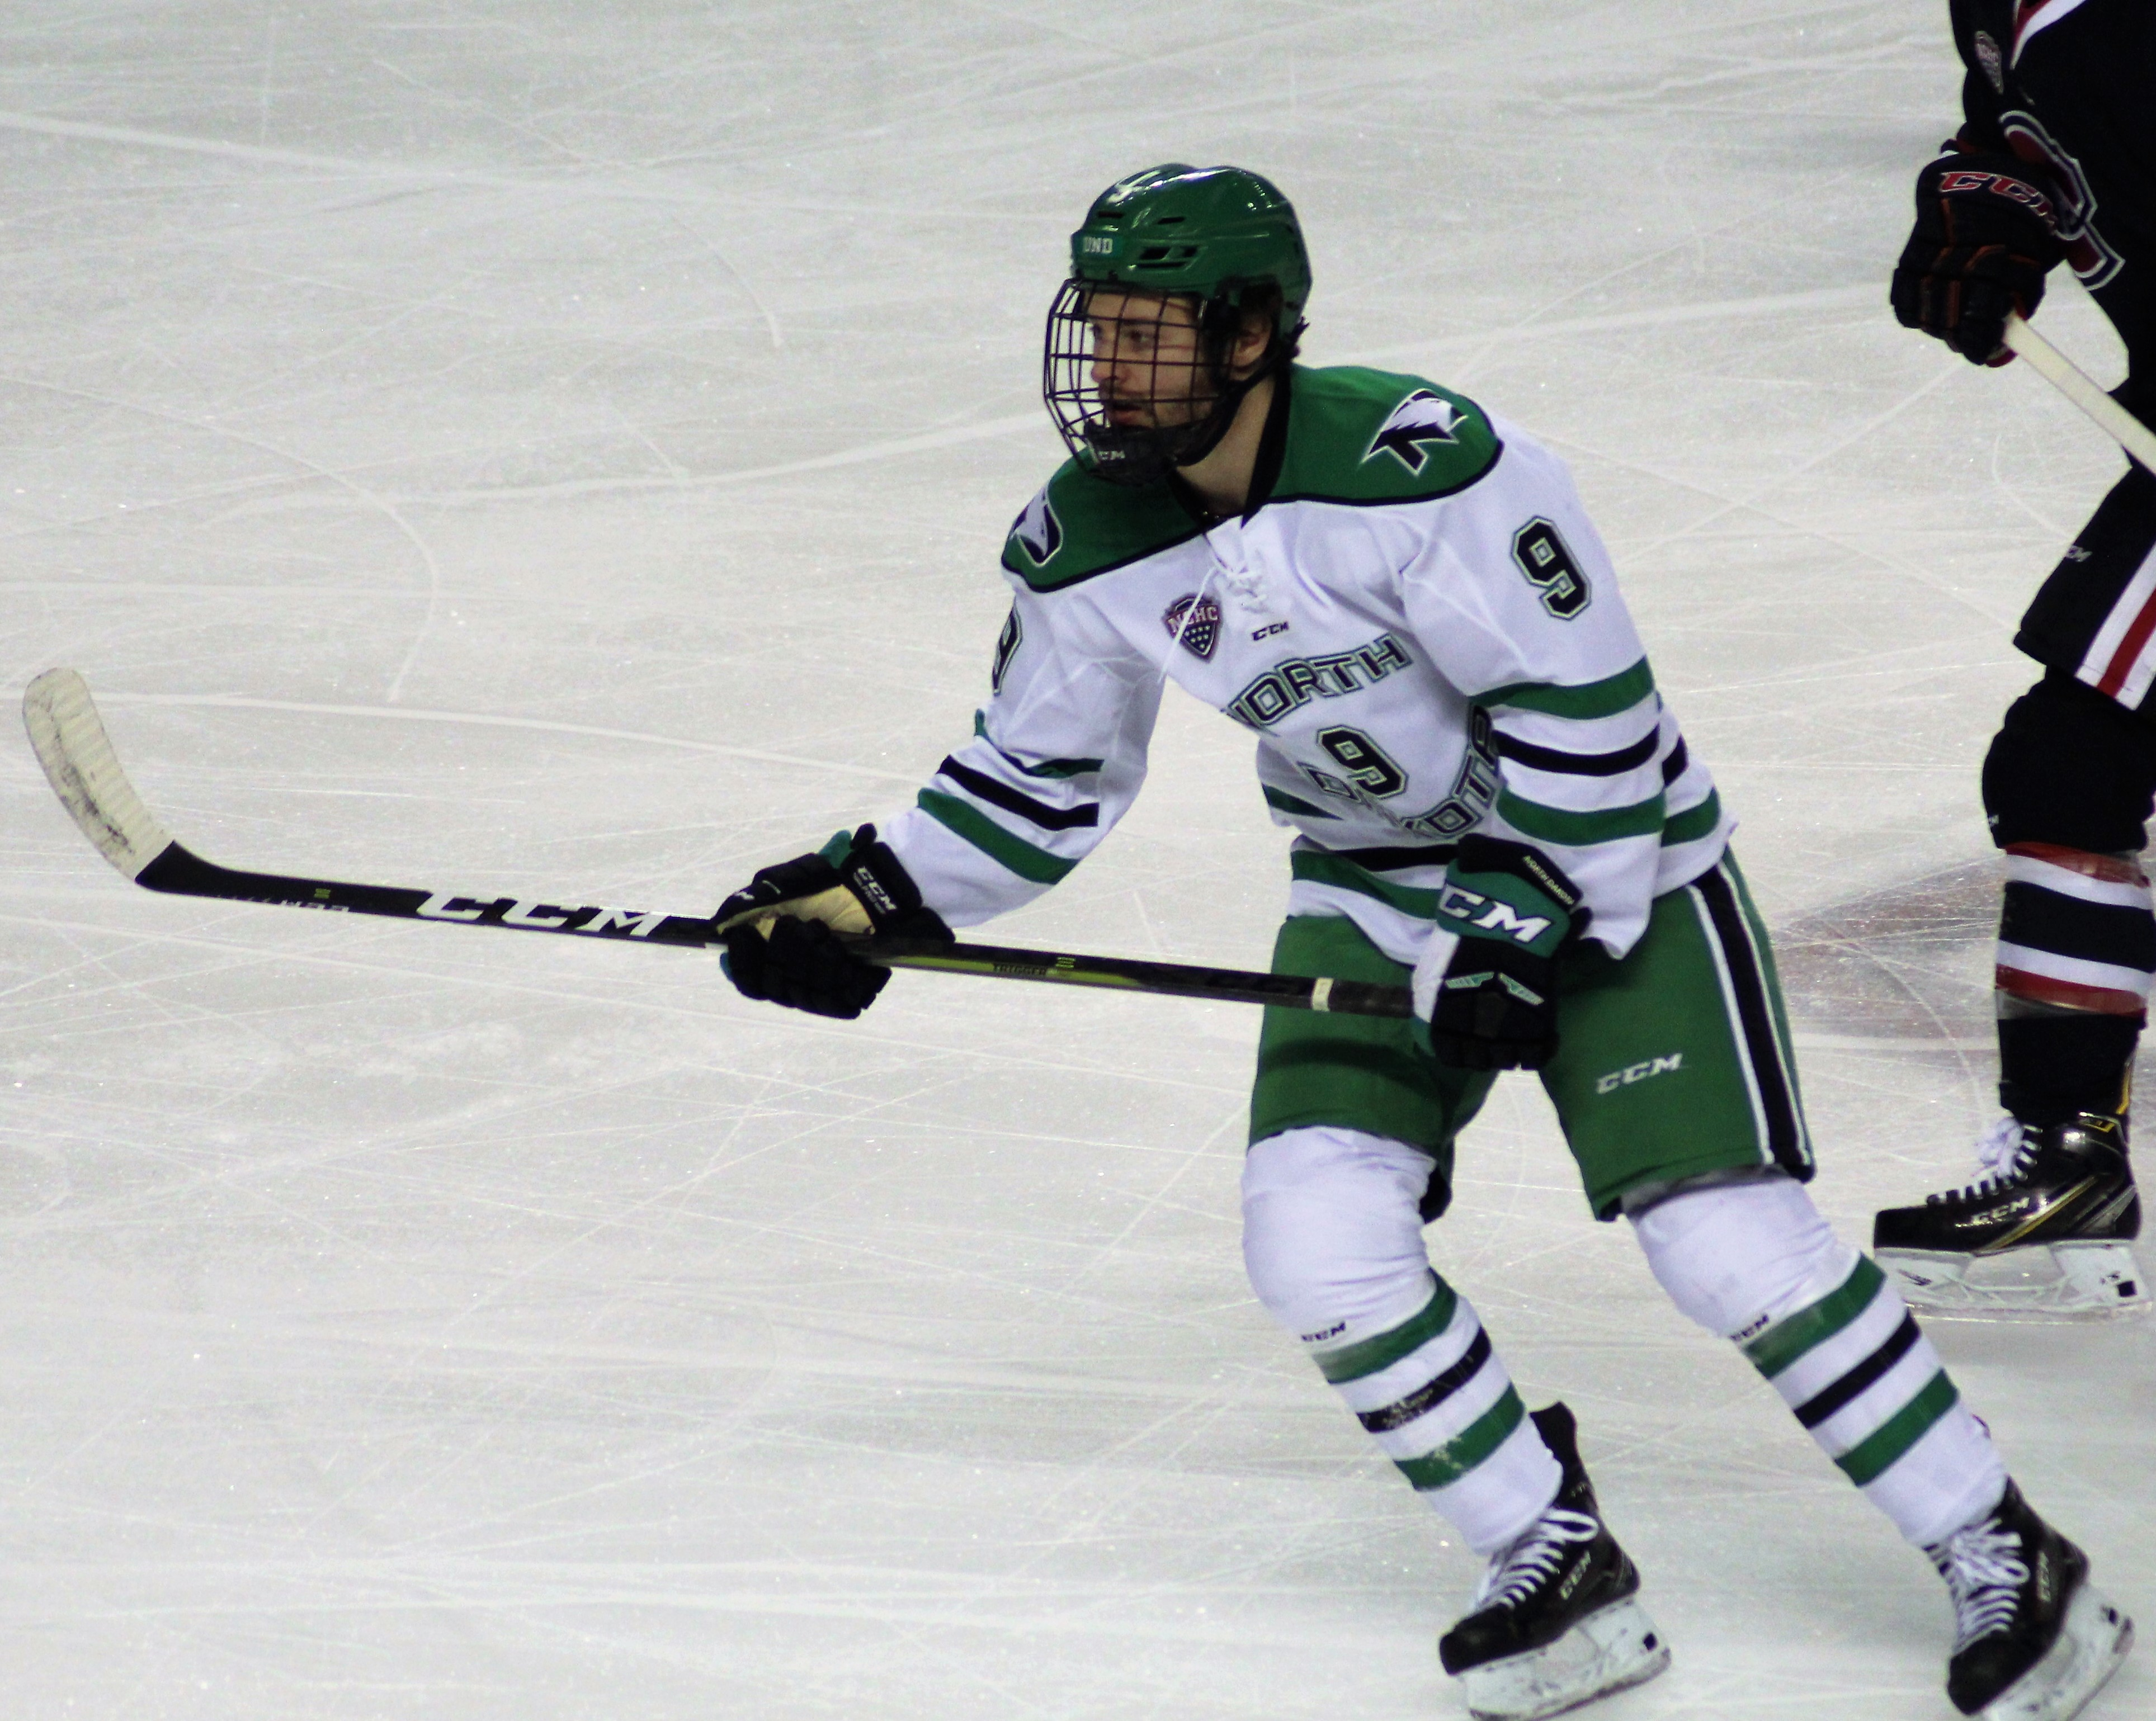 UND Hockey: Getting Secondary Scoring from Unexpected Sources